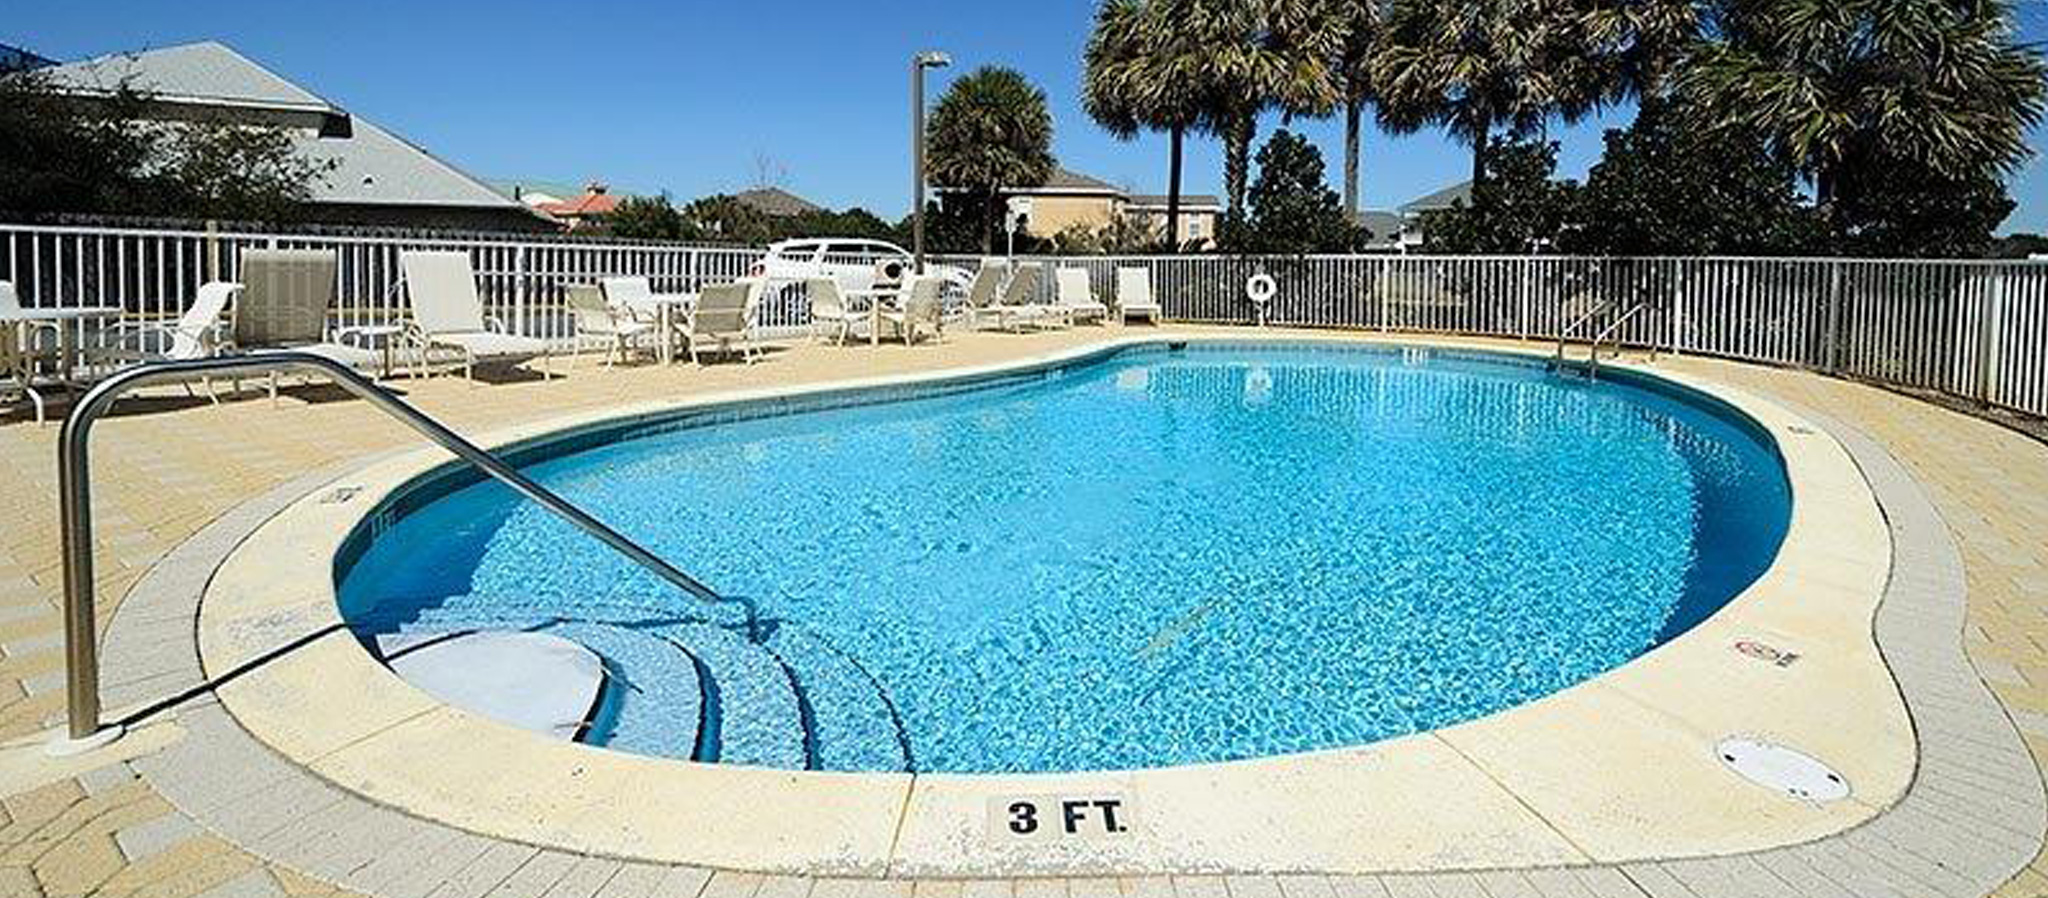 Find vacation rentals with pools near Destin, FL.